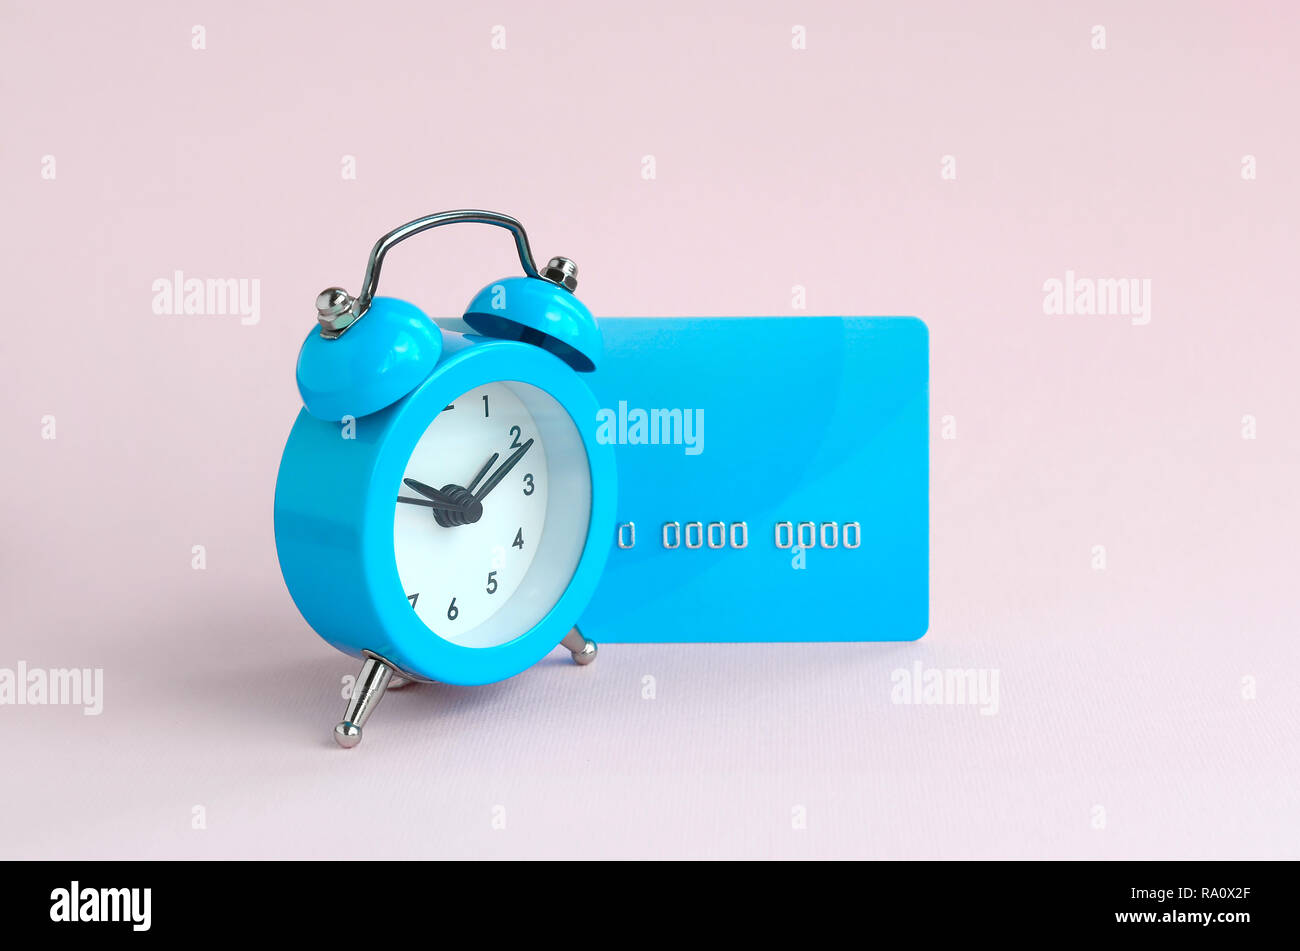 Small blue alarm clock is next to blue credit card. The concept of modern fast online banking and instant financial operations - Stock Image